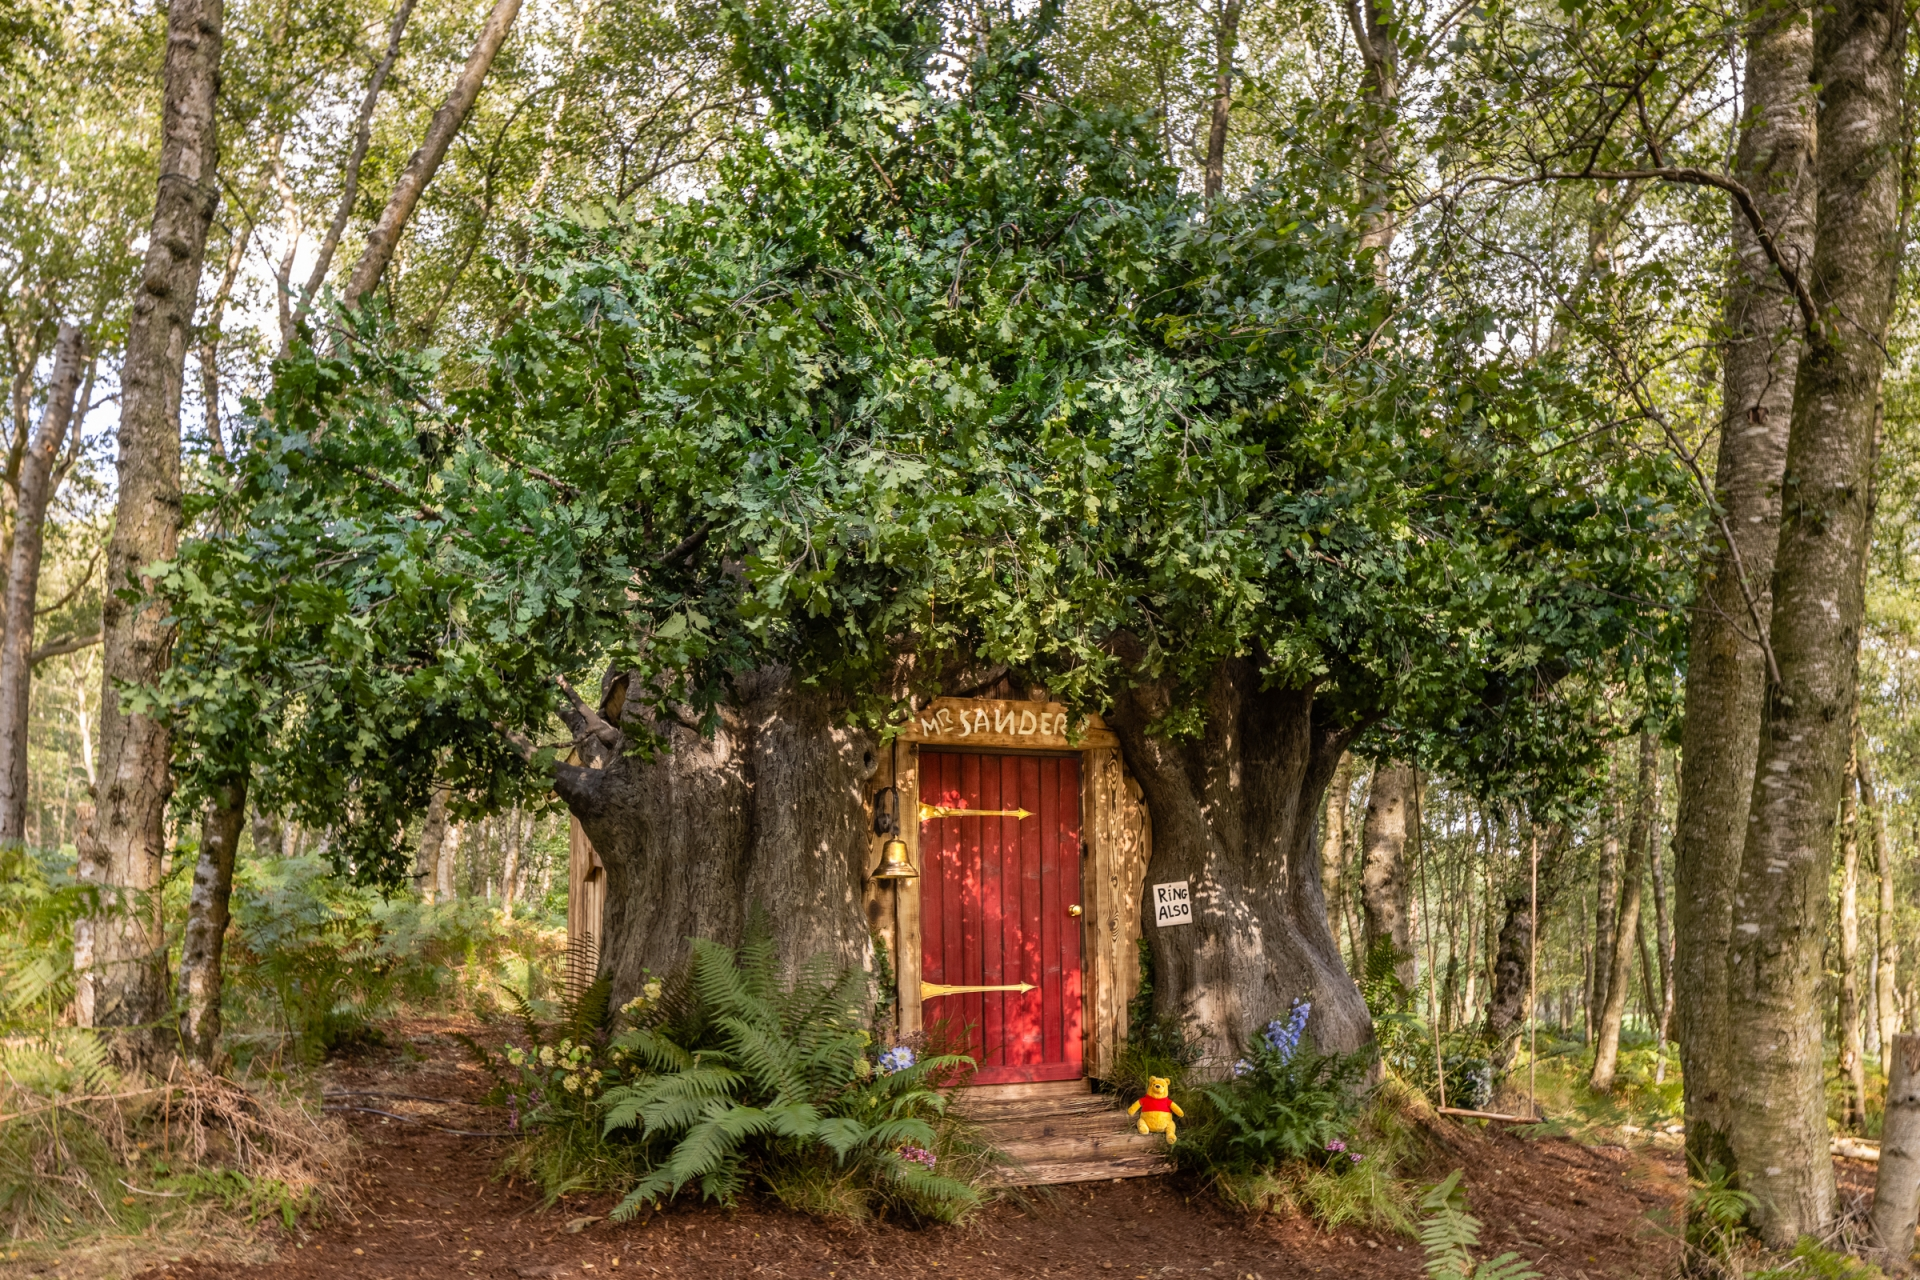 Winnie the Pooh inspired house in the Hundred Acre Wood is available to book on Airbnb as part of Disney's 95th Anniversary celebrations